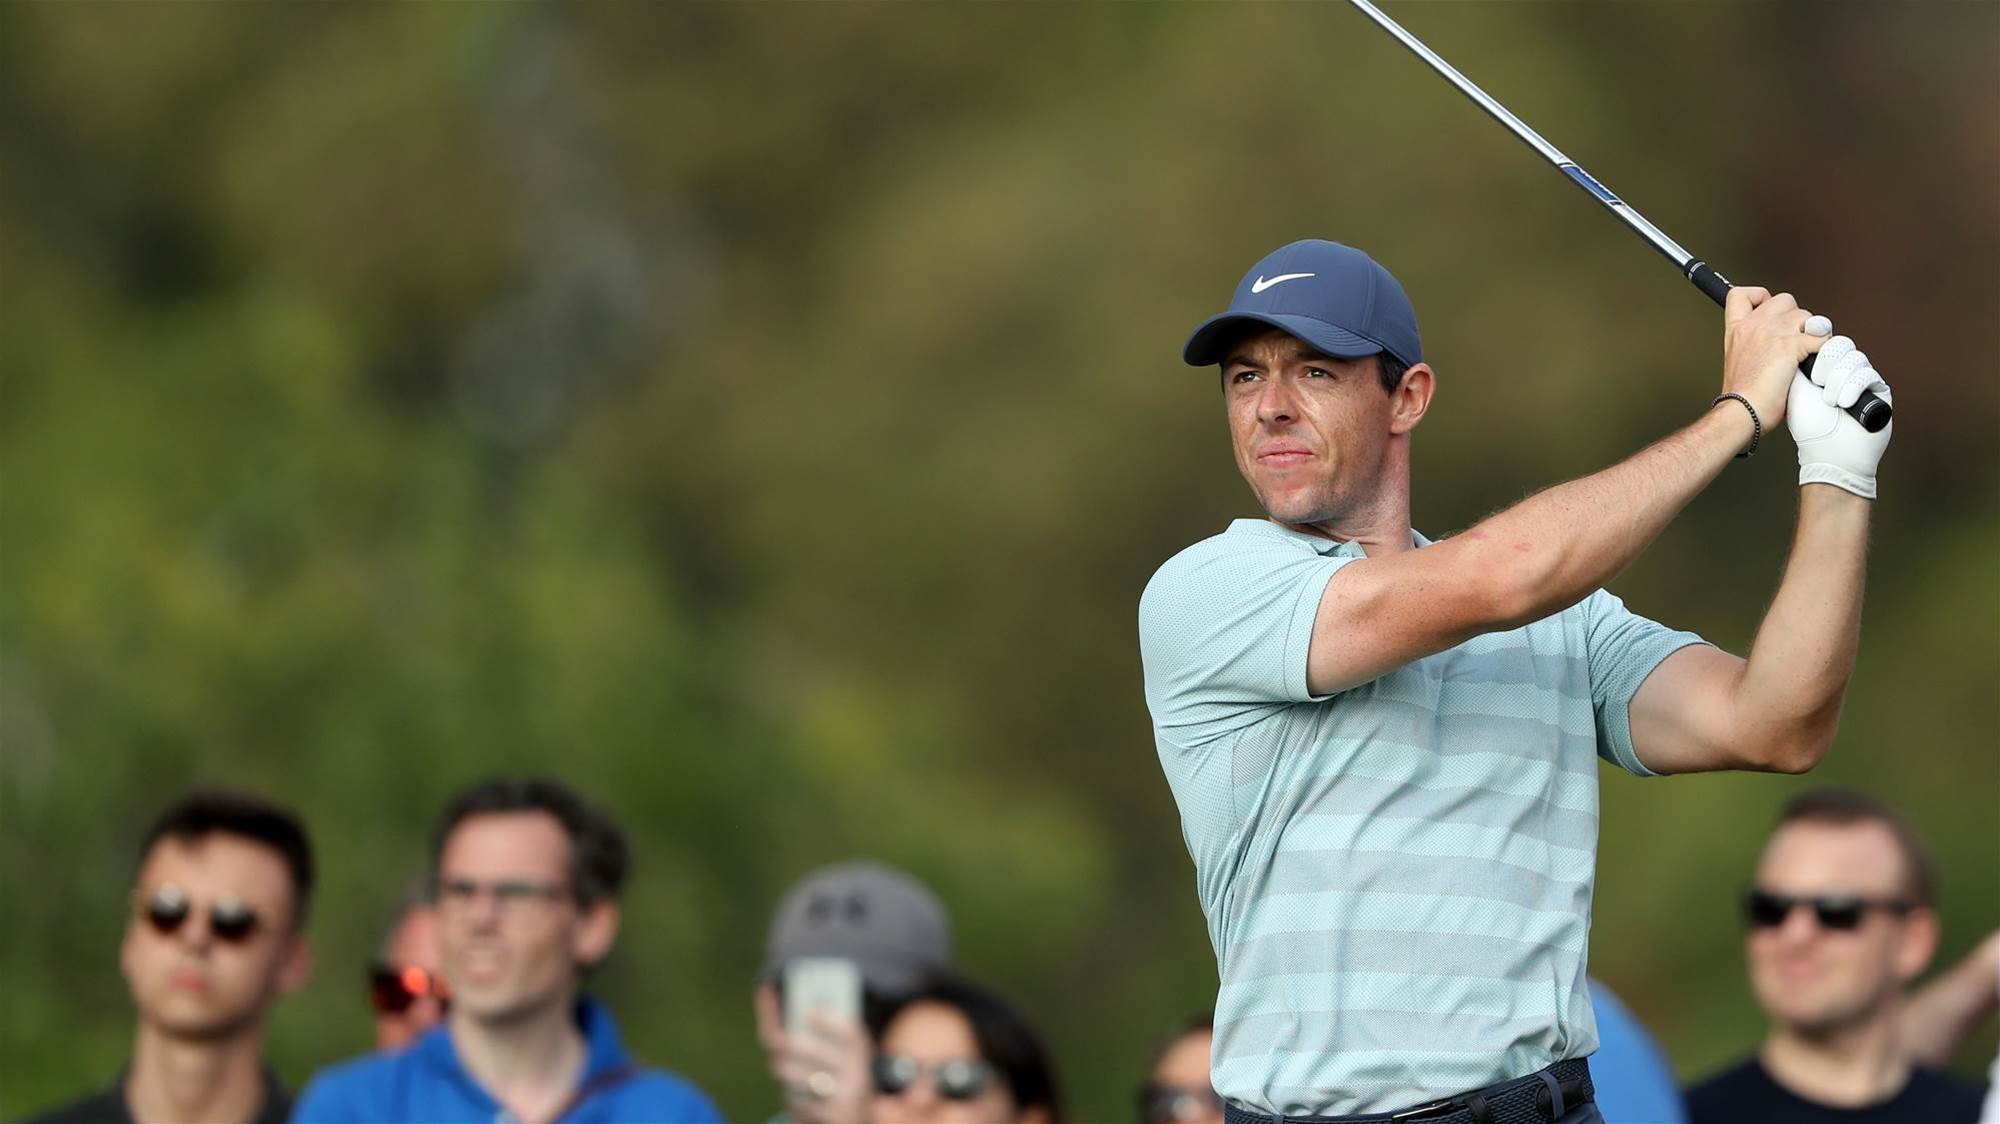 Rory McIlroy primed for Pebble Beach debut